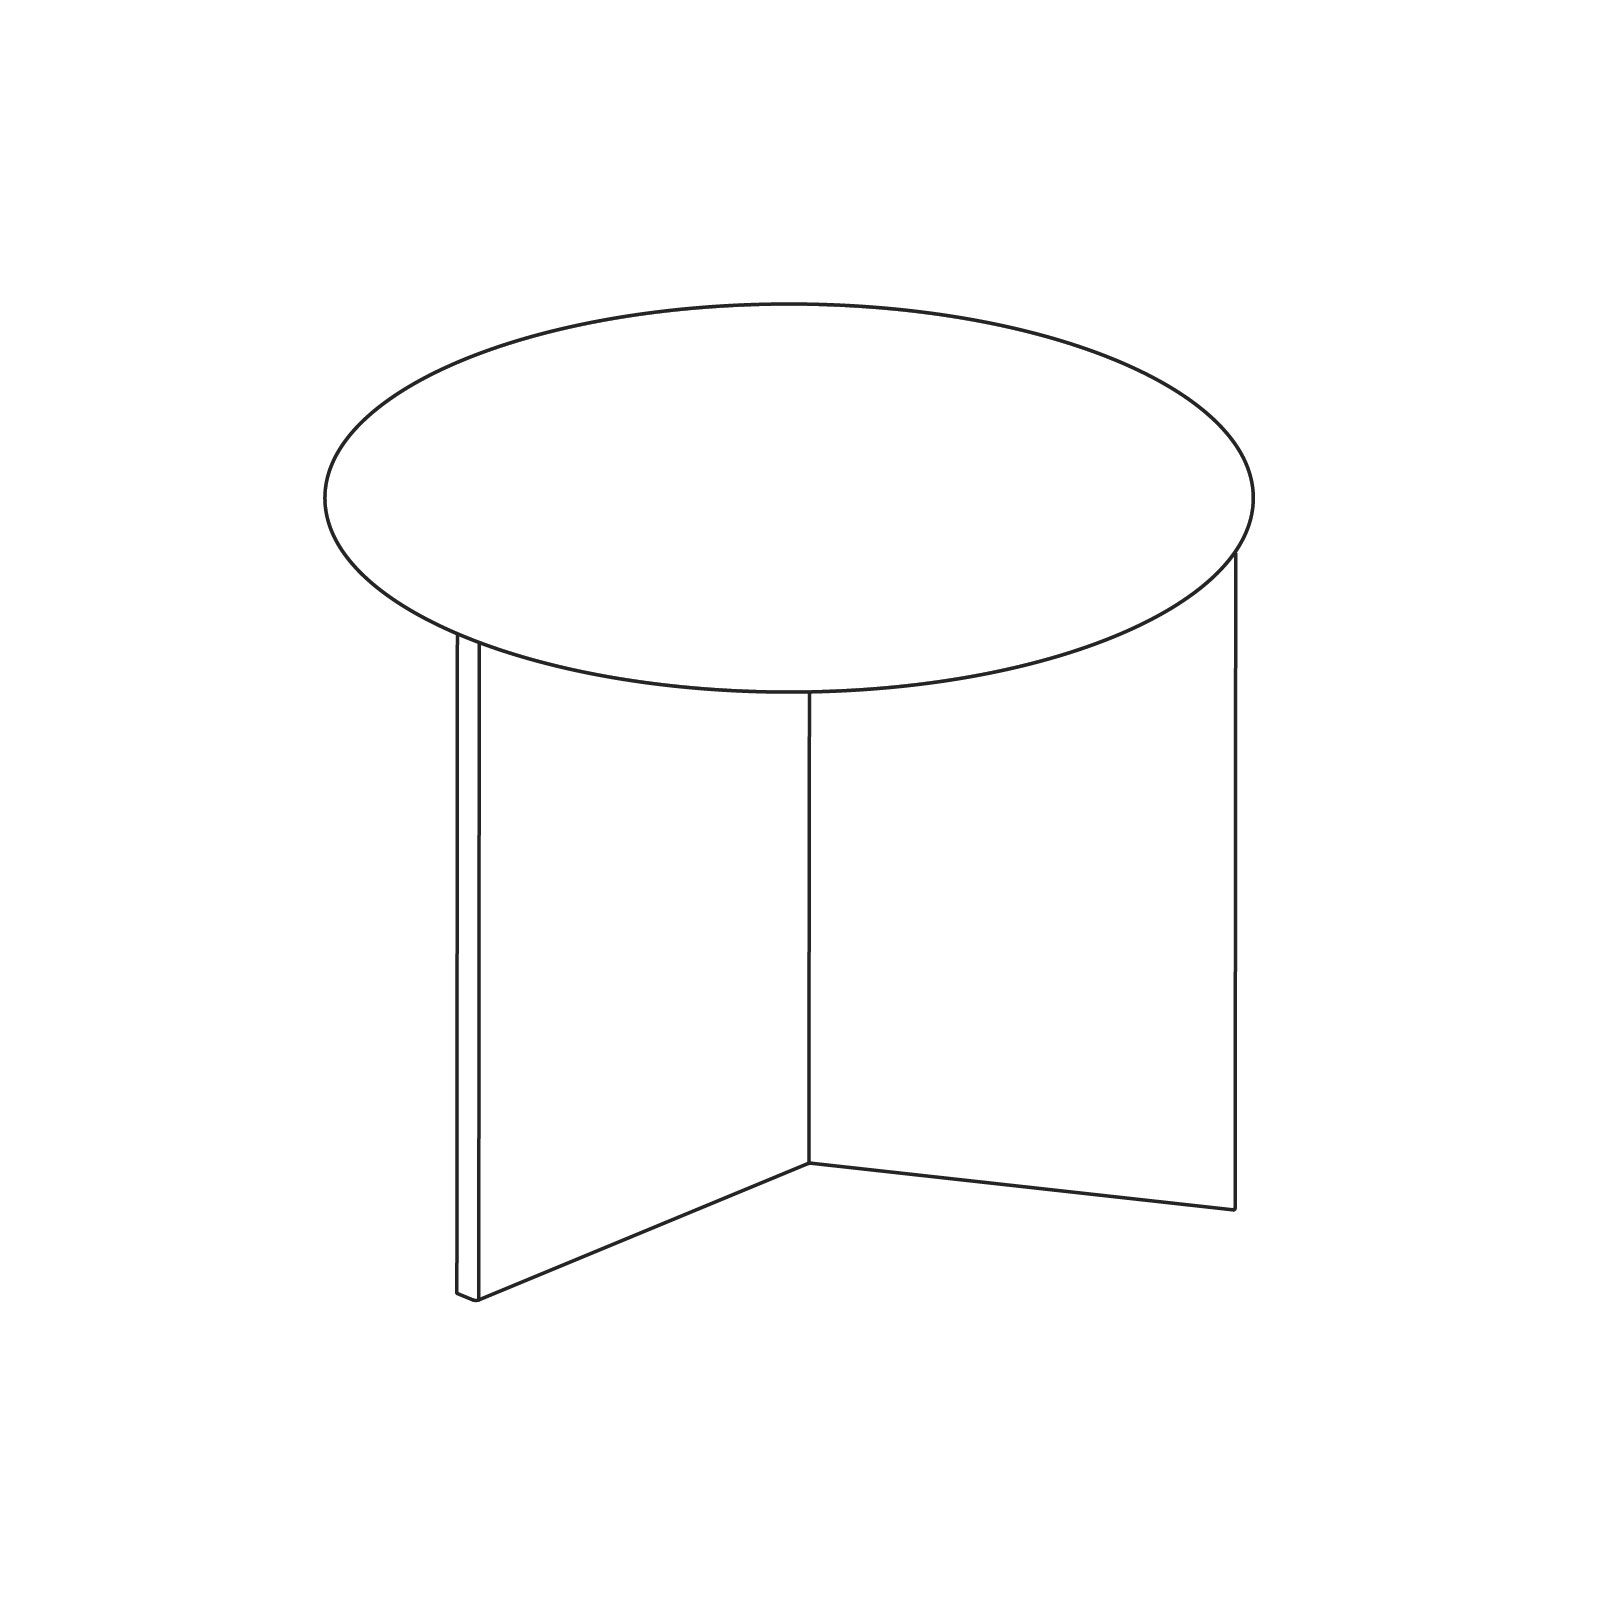 A line drawing of Slit Table–Round.